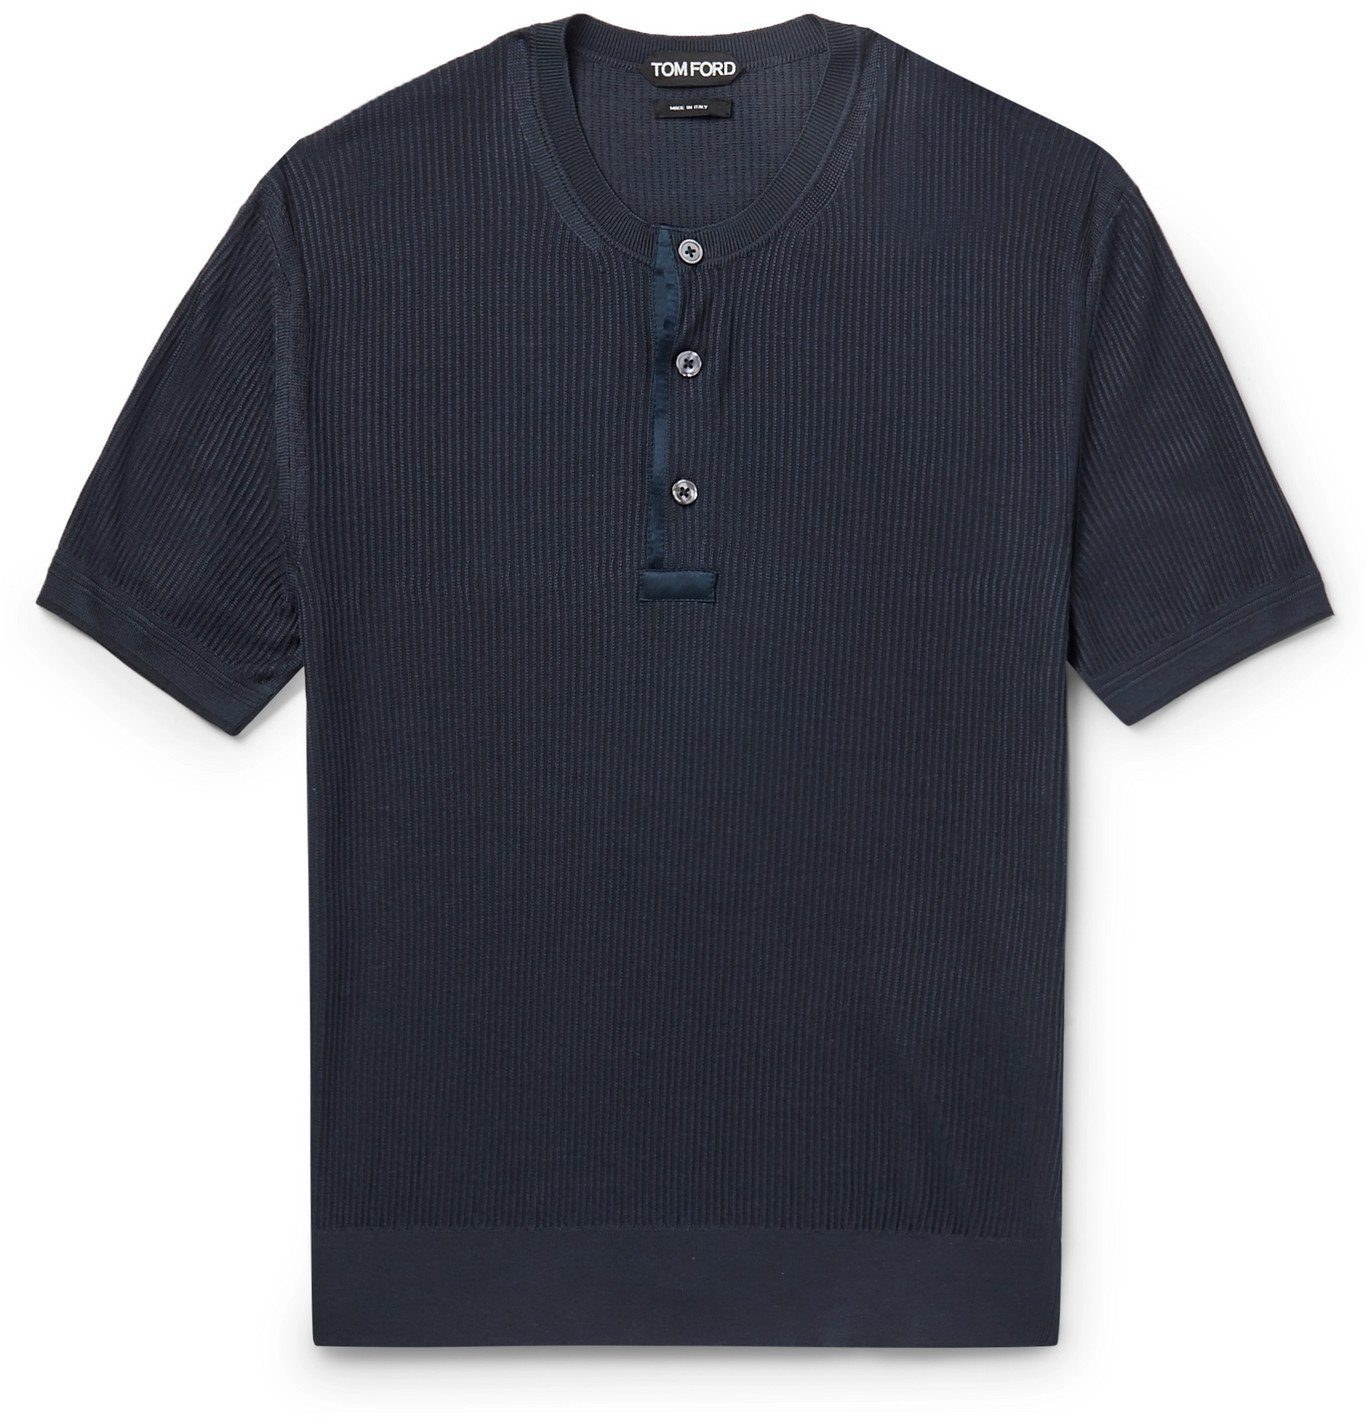 TOM FORD - Satin-Trimmed Ribbed Silk Henley T-Shirt - Blue